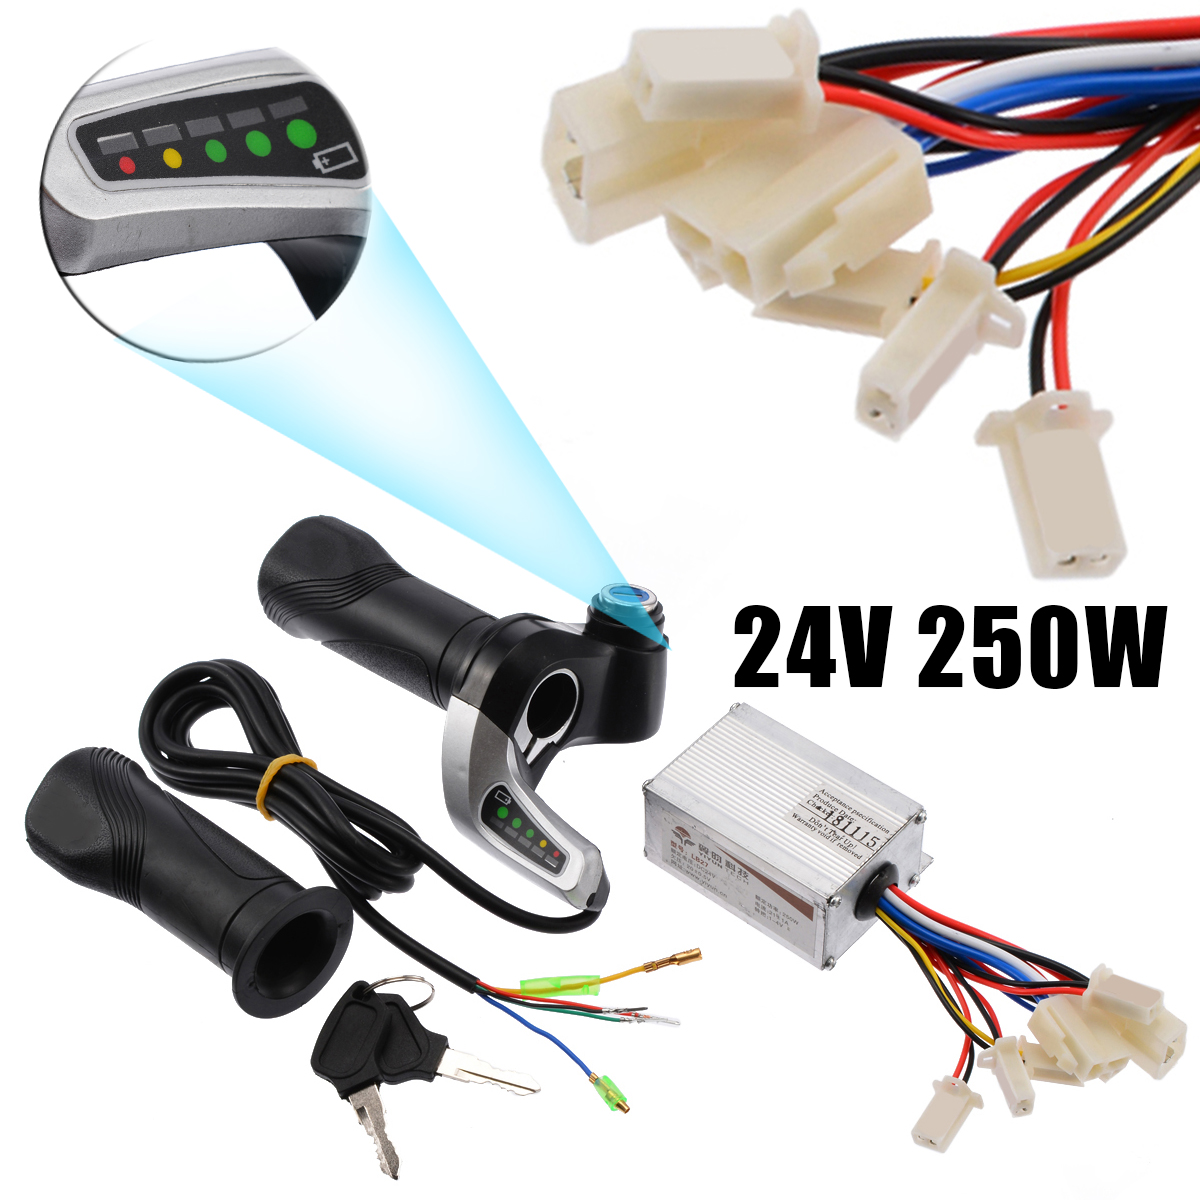 New Electric Scooter Accessories Motor Brushed Controller & Throttle Twist Grip 24V 250W For Electric Scooter Bicycle Bike